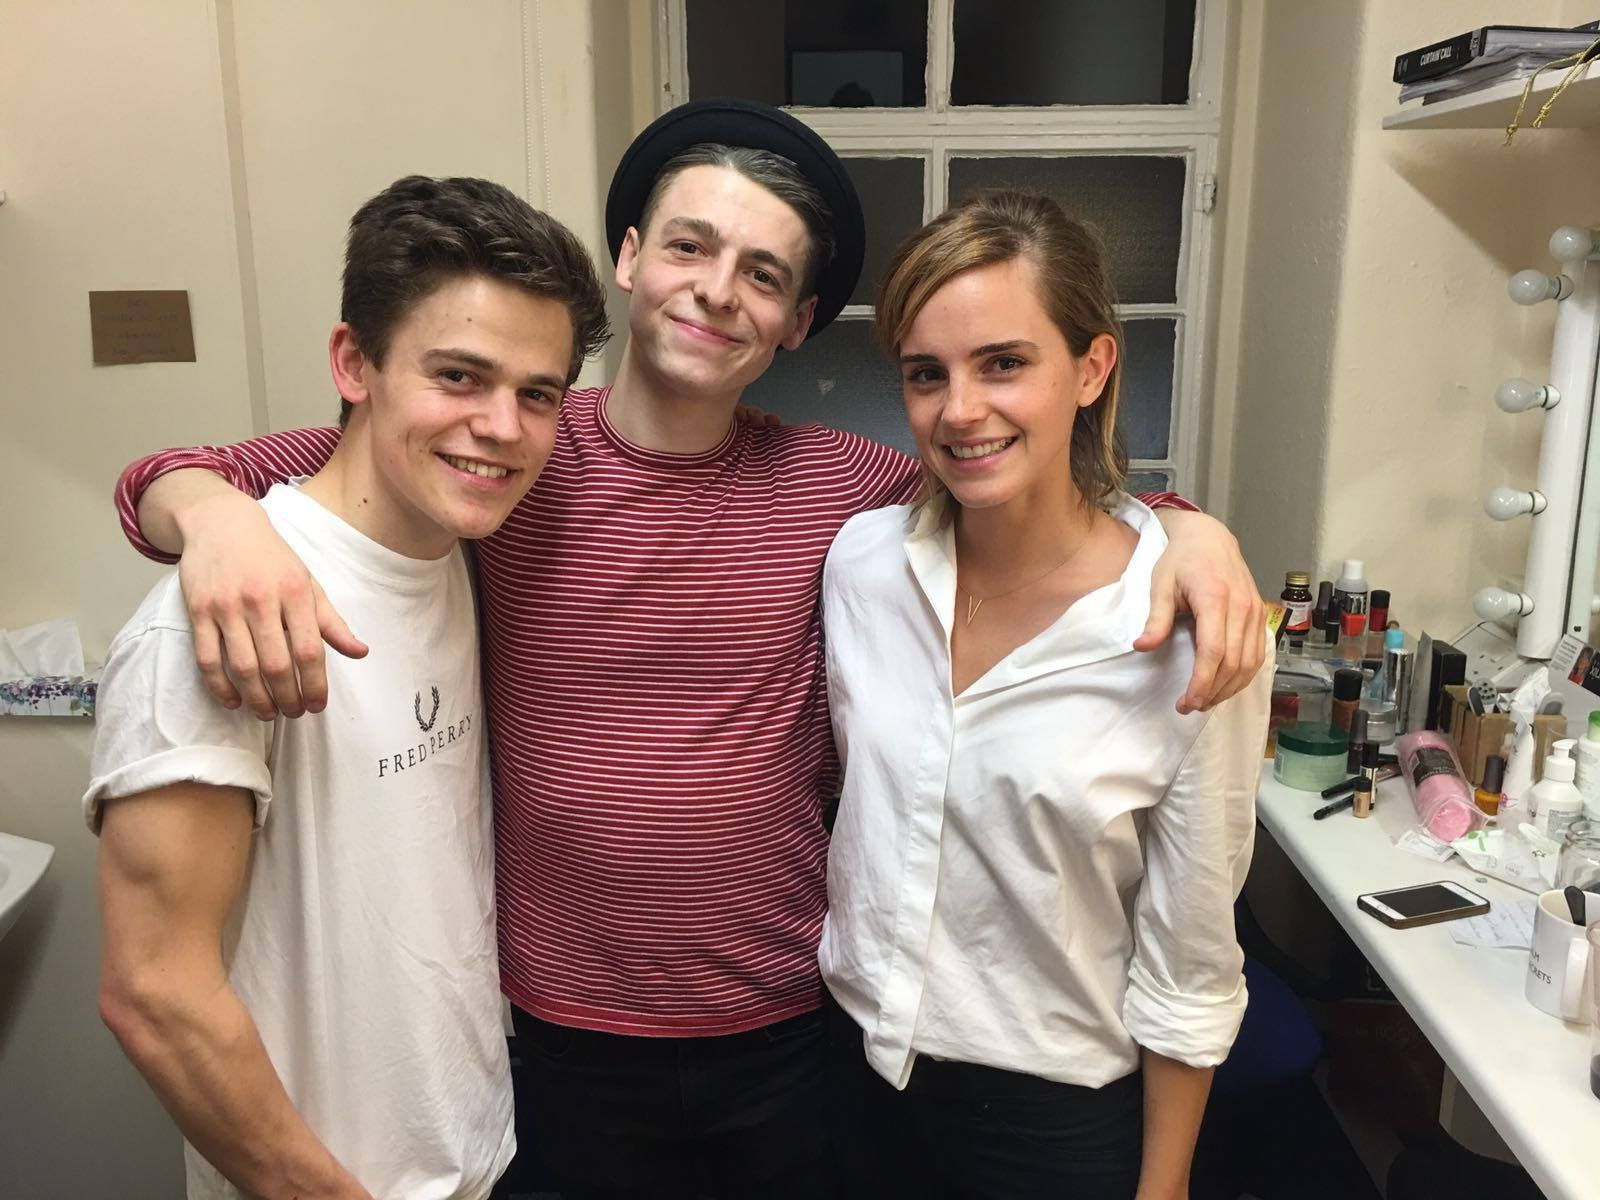 Pin By Londony 3 On Women Anthony Boyle Harry Potter Actors Cursed Child